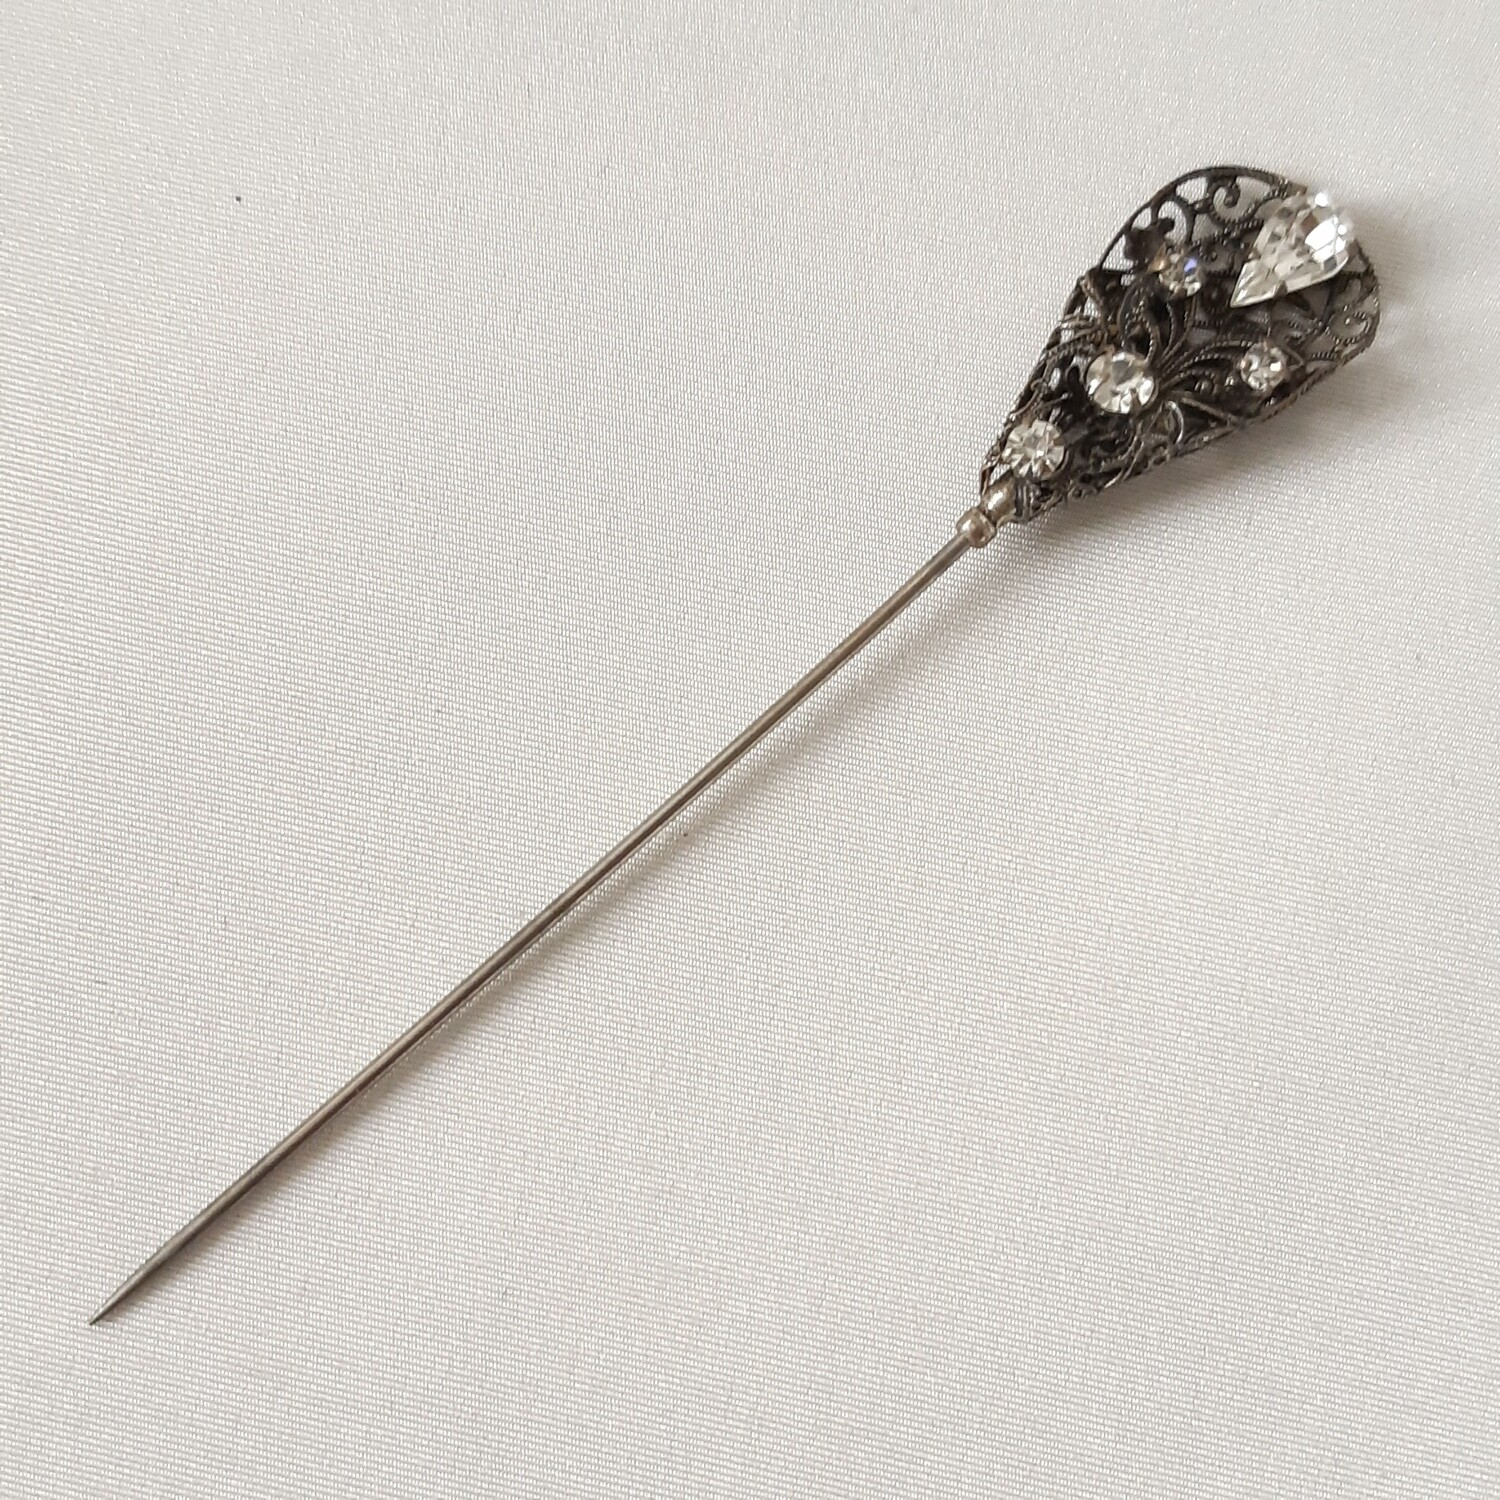 Hatpin - Antique Victorian Edwardian style